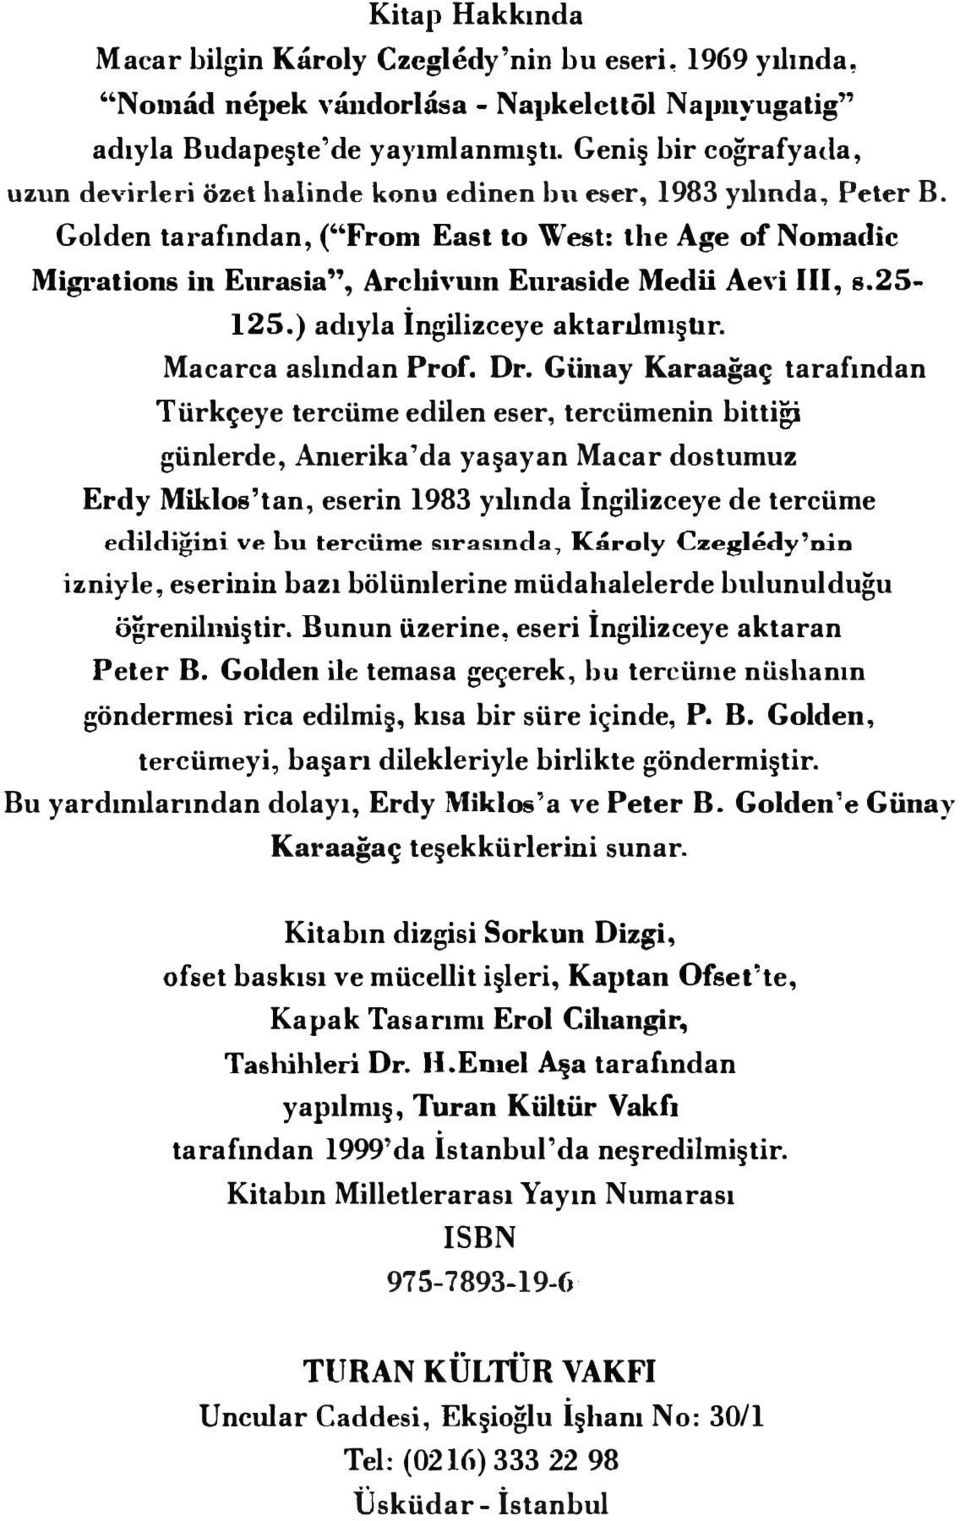 "Golden tarafından, (""From East to West: the Age of Nomaclic Migrations iıı Eurasia"", Arclıh'mn Euraside Medü Ae, i 111, s.25-125.) adıyla İngilizceye aktarılınıştır. Macarca aslından Prof. Dr."